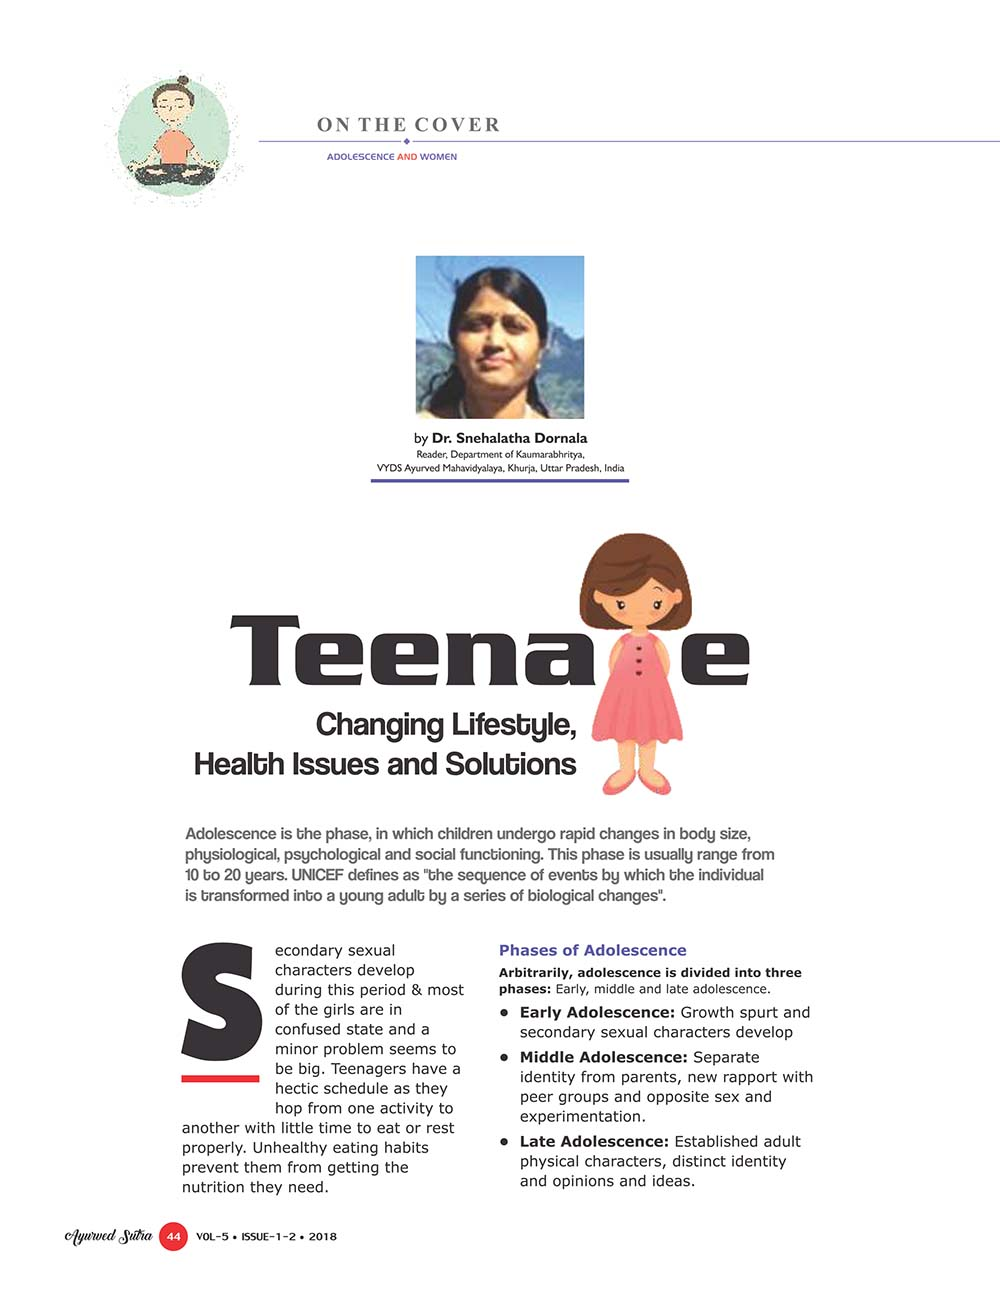 Ayurvedsutra Vol 05 issue 01 02 46 - Teenage: Changing Lifestyle, Health Issues and Solutions